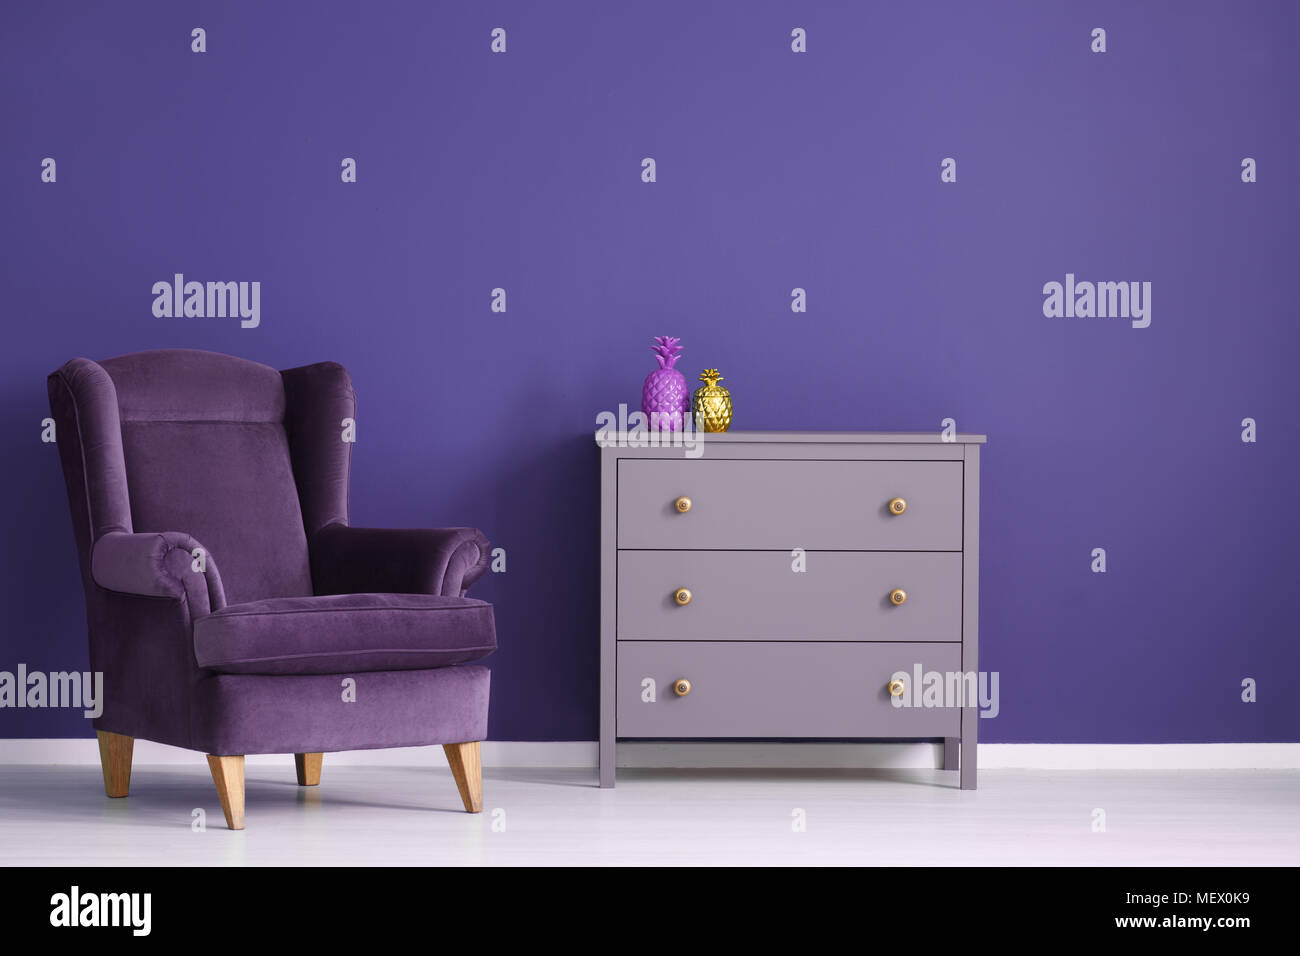 Gold Pineapple On Violet Cabinet Next To A Velvet Purple Armchair In Living  Room Interior